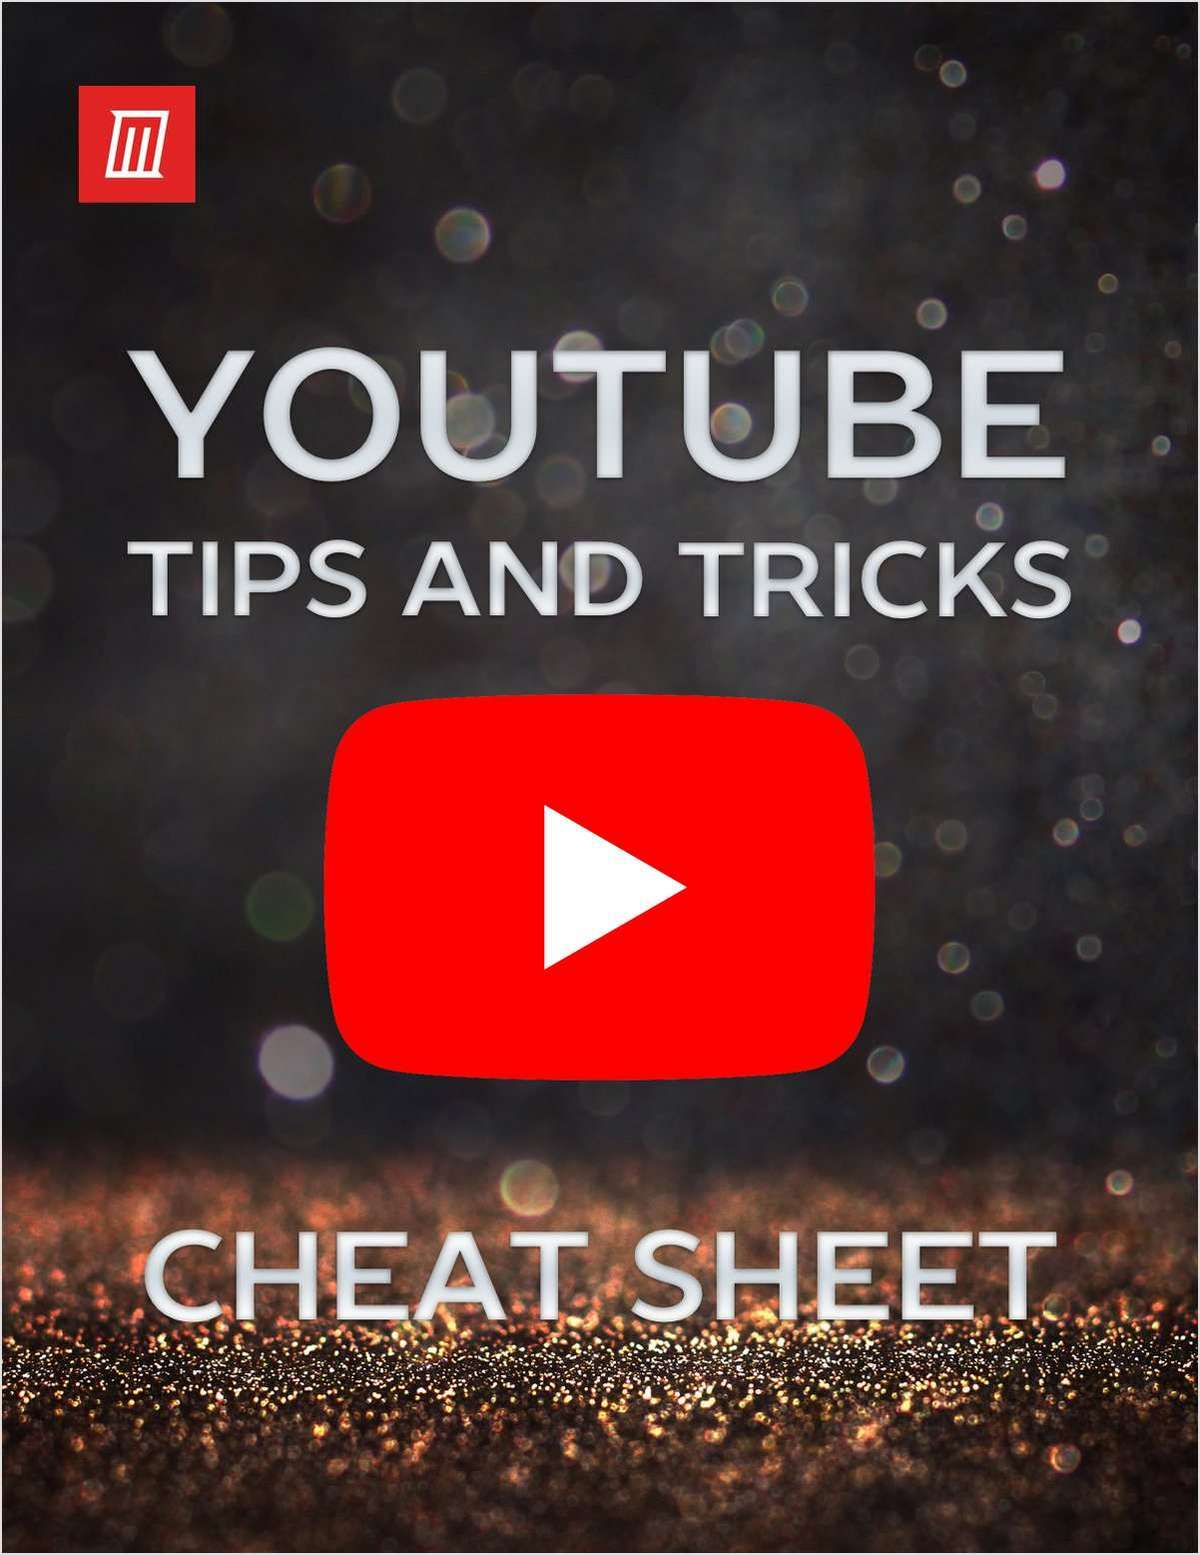 Useful Tips and Tricks for Navigating YouTube